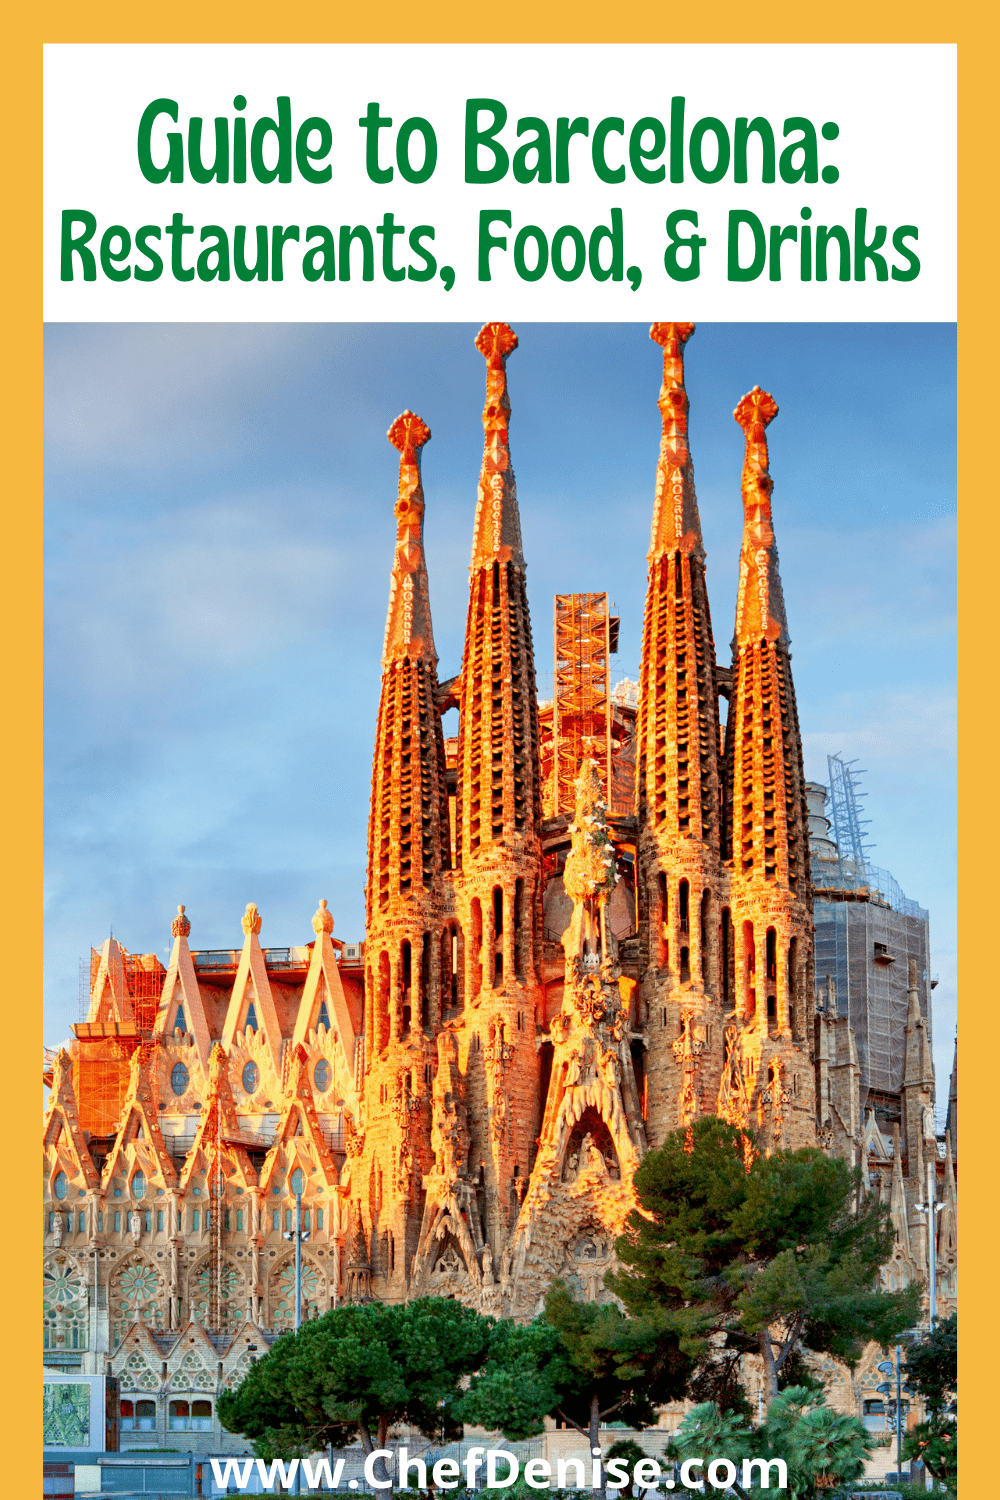 Pin for Guide to Barcelona Restaurants, Food, & Drinks